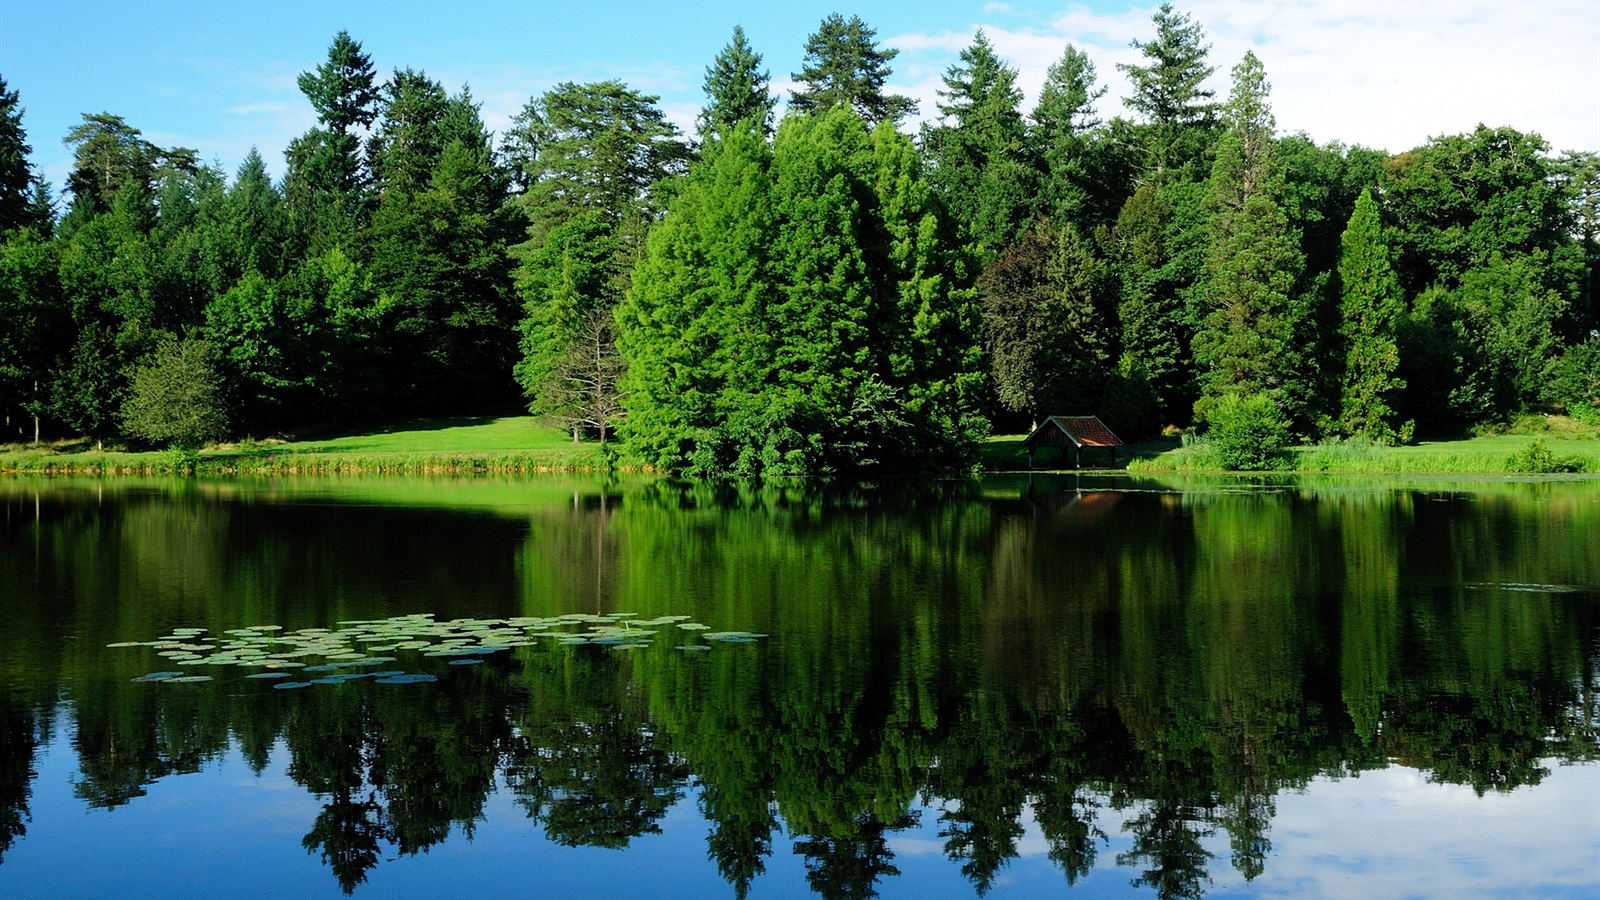 France-nature-landscape-trees-greenery-lake-water-reflection_1600x900